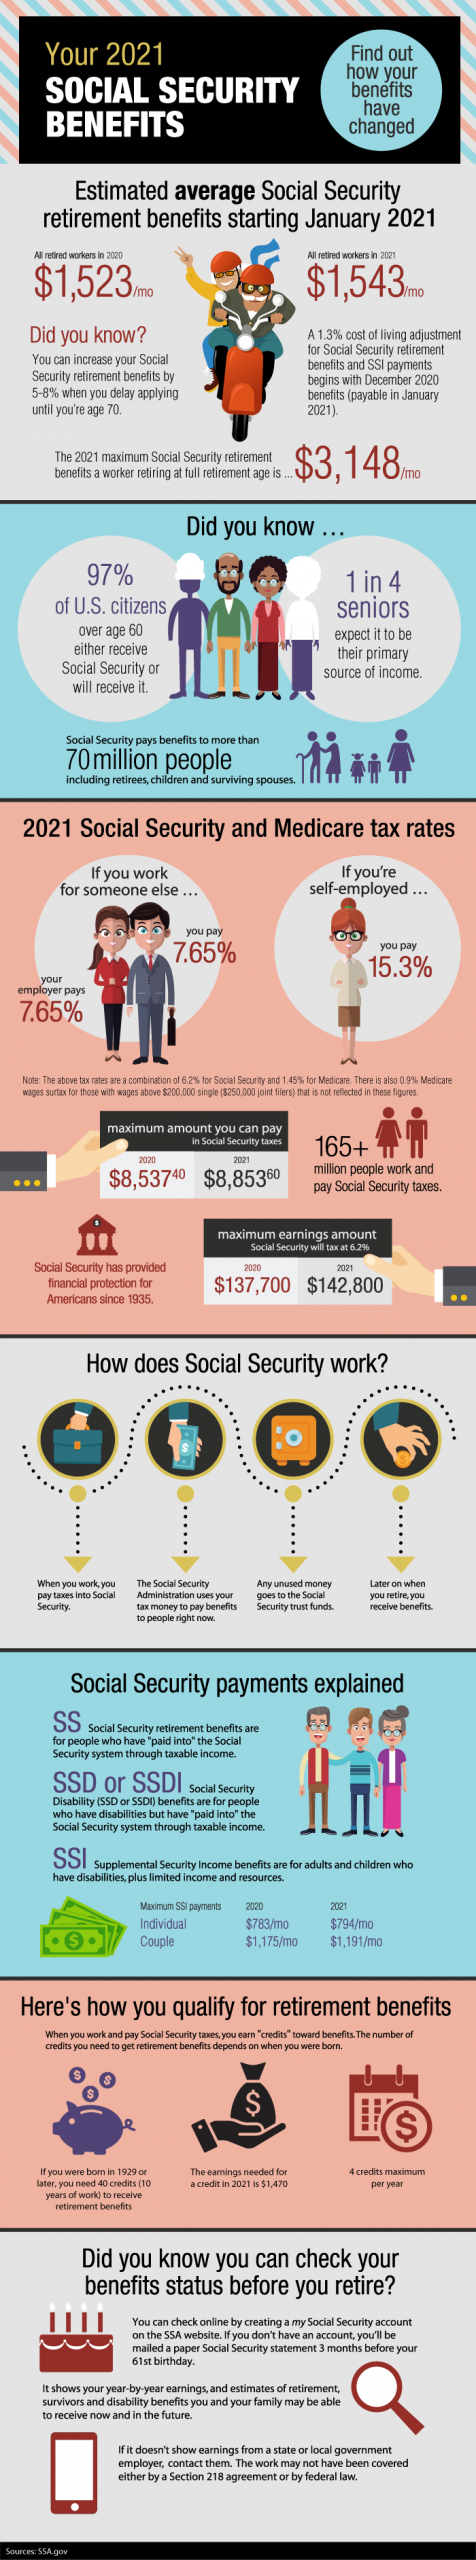 Social Security Benefits 101 For 2021 | Beaird Harris